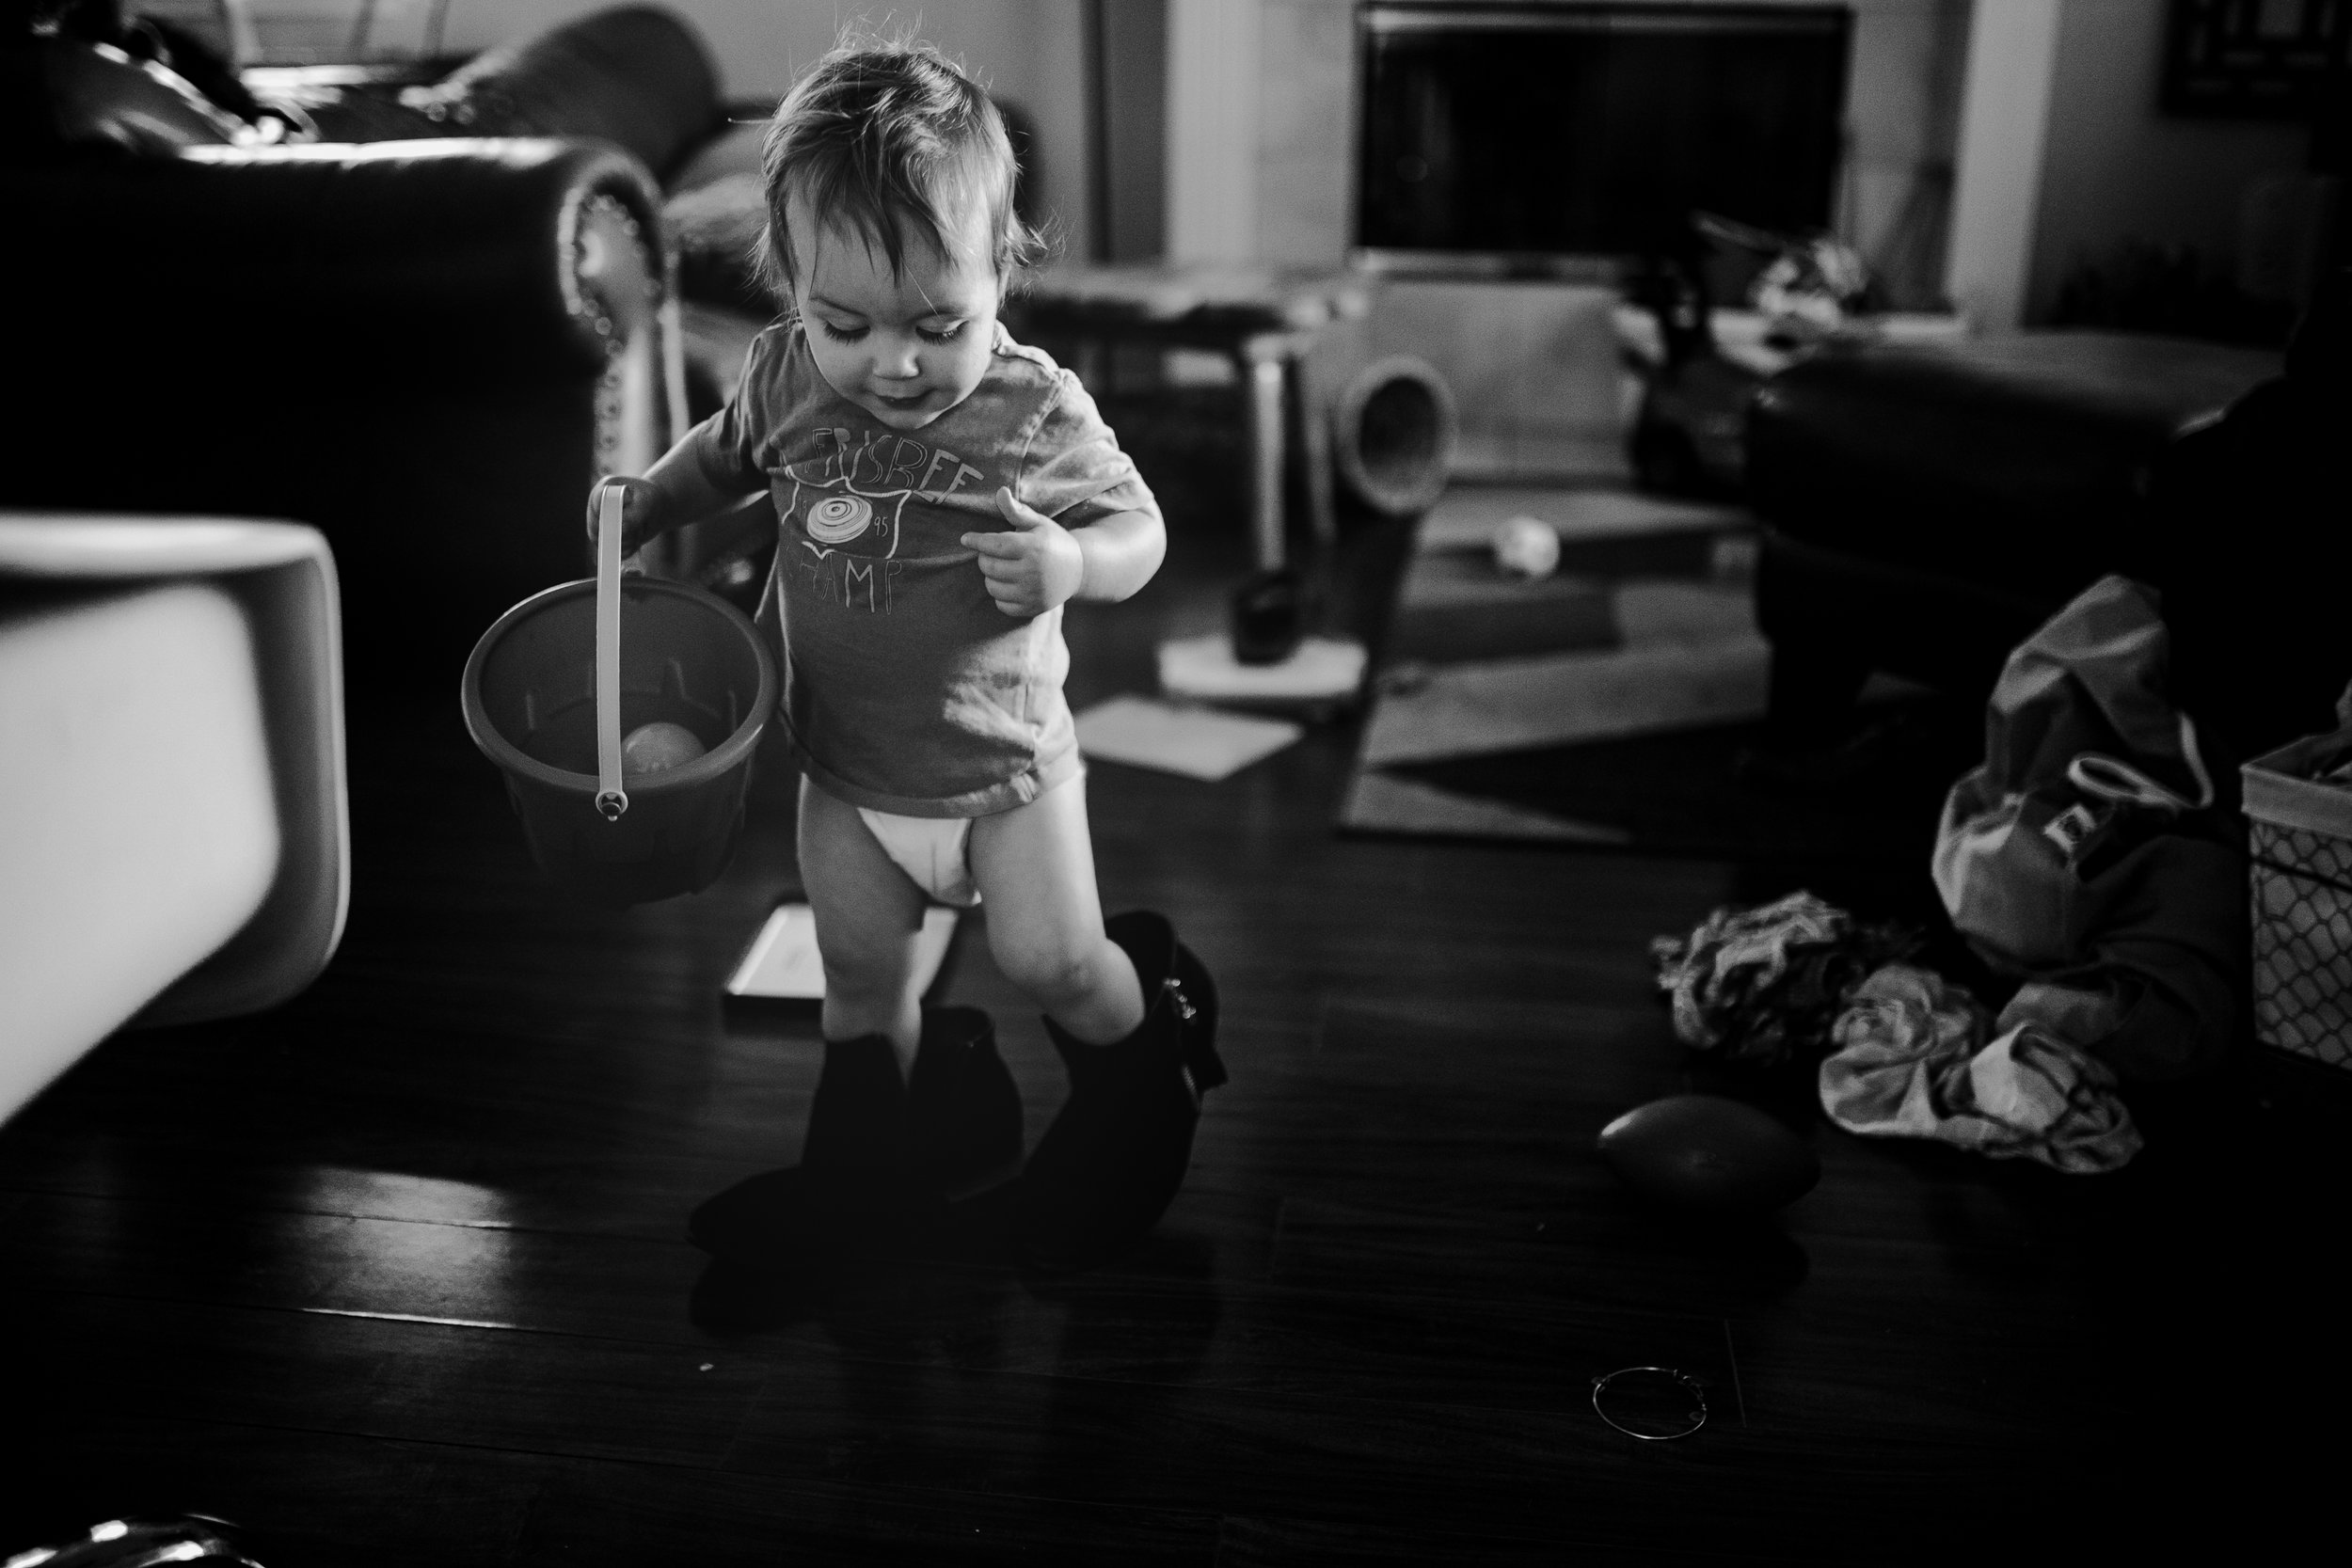 Archer Inspired Photography Family Lifestyle Photographer Morgan Hill California San Jose In Home Documentary Session Toddler-11.jpg